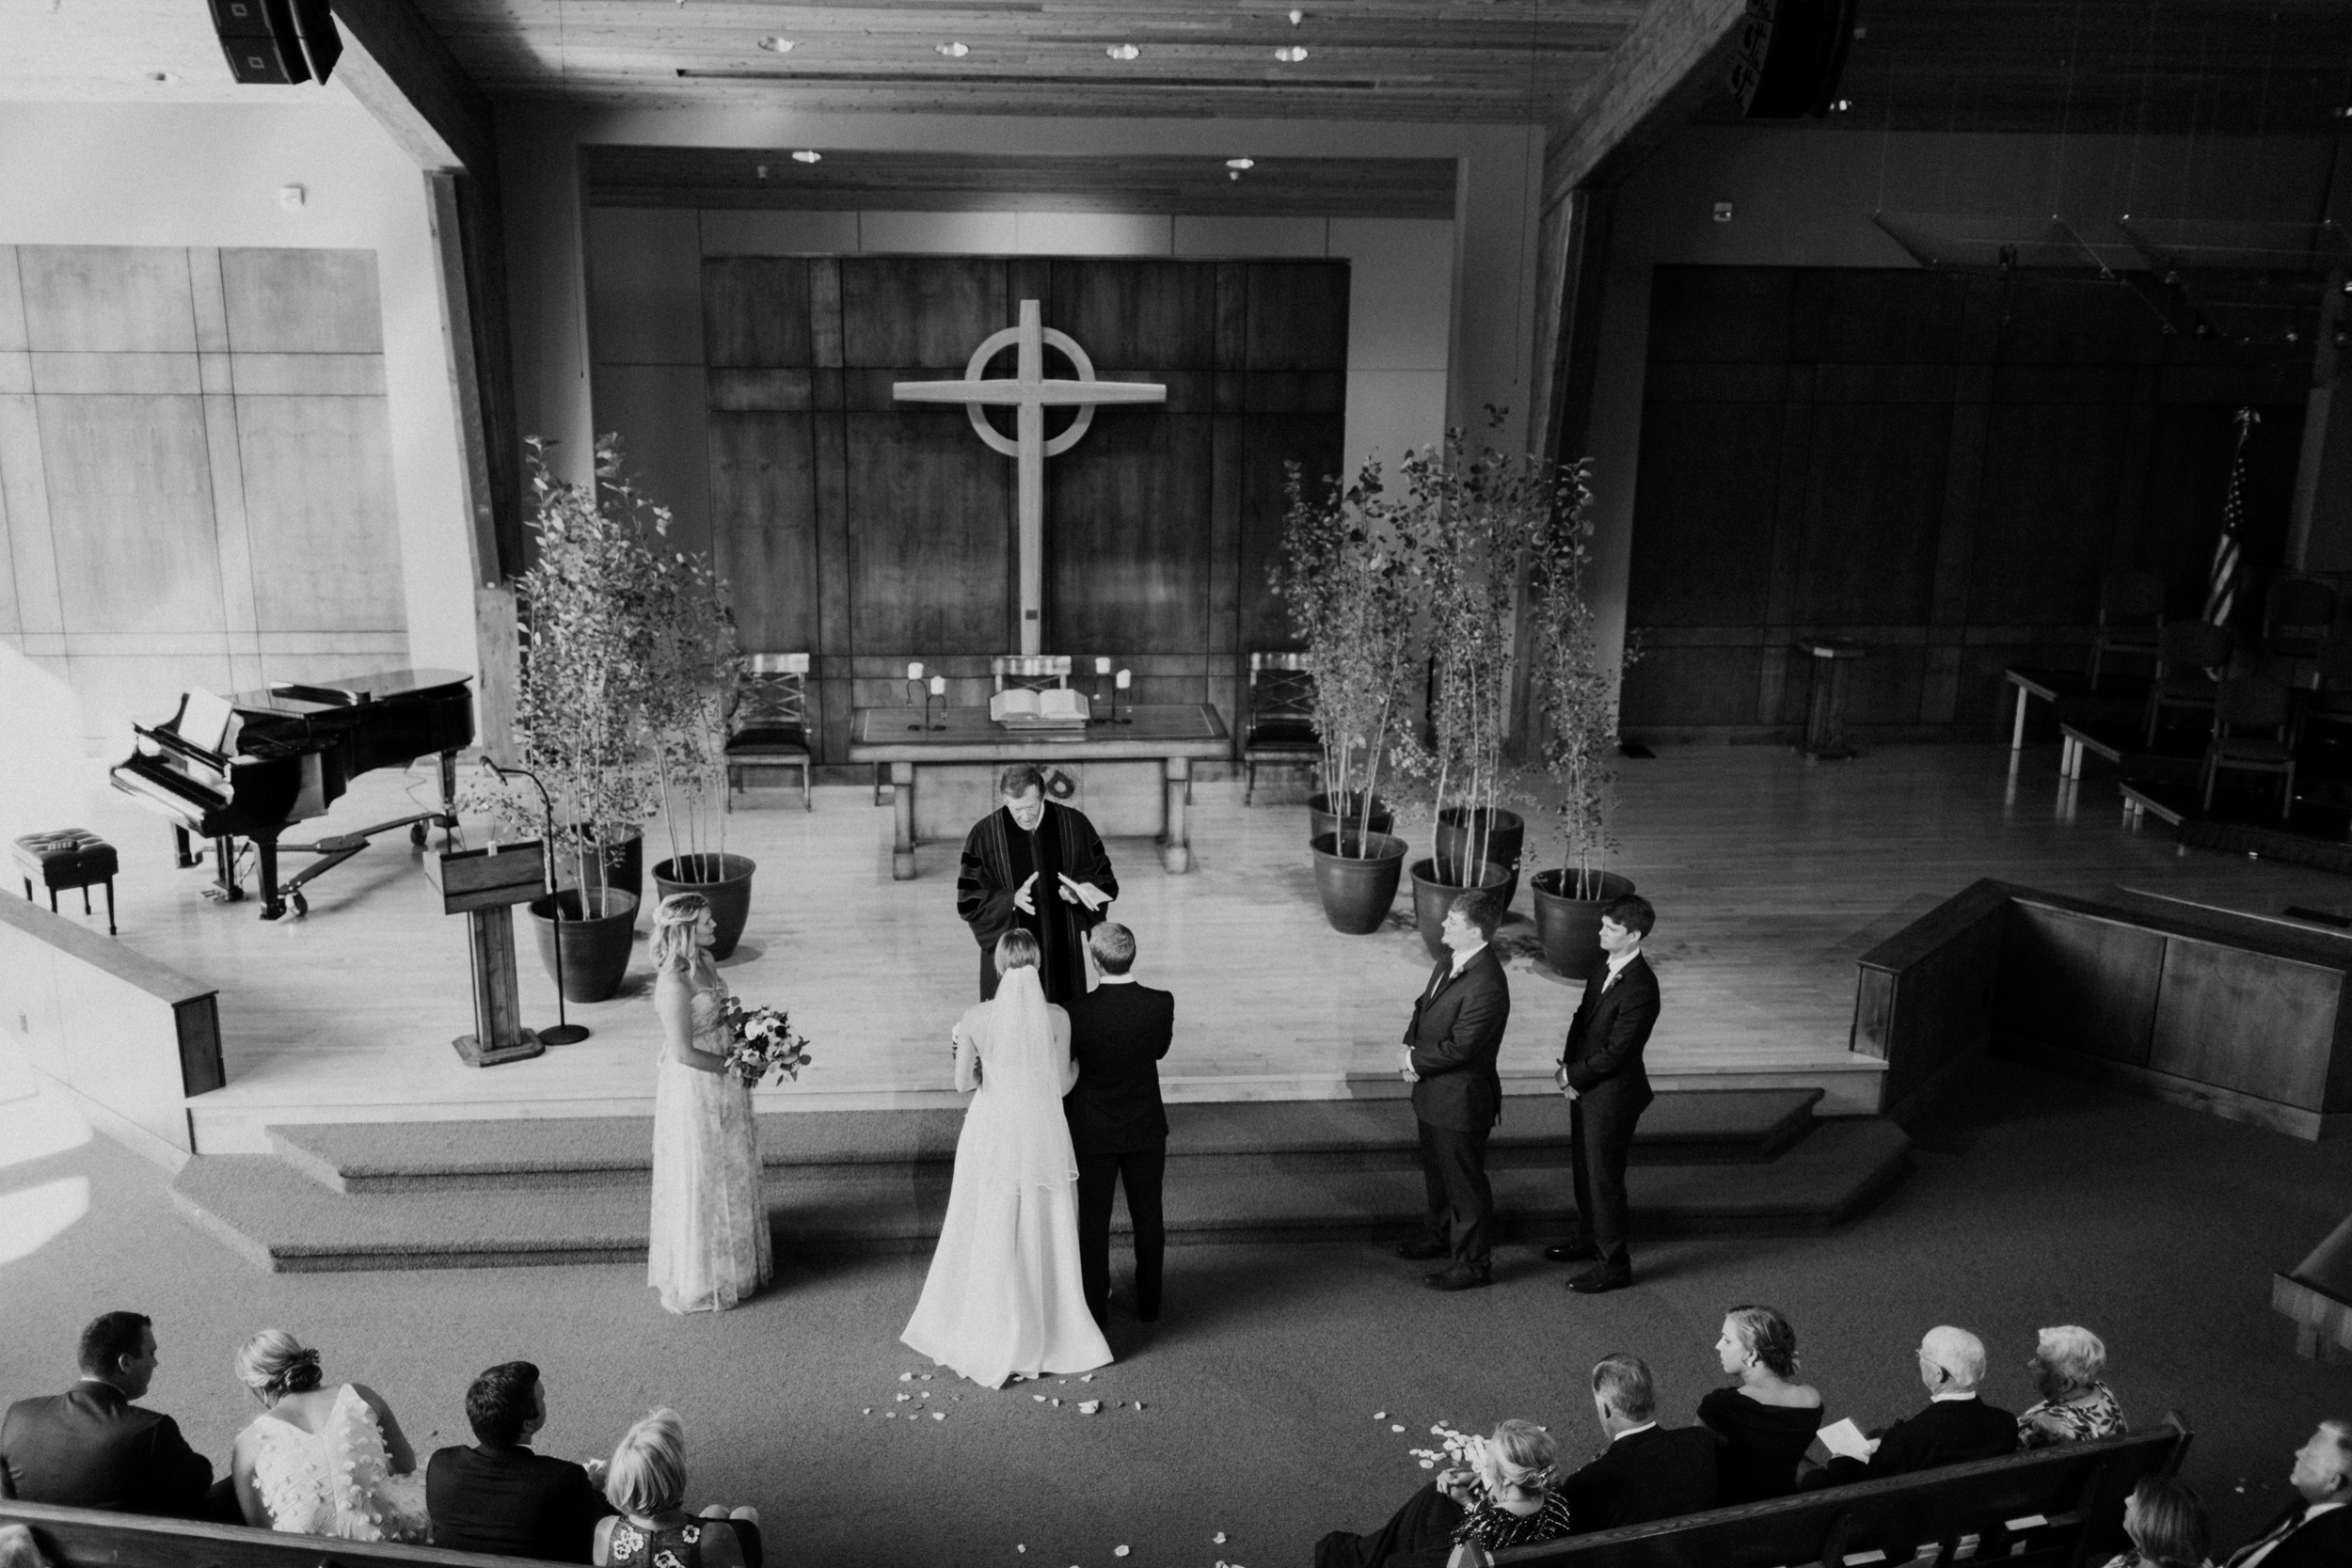 mad_Jon_Sun_valley_idaho_wedding-48.jpg